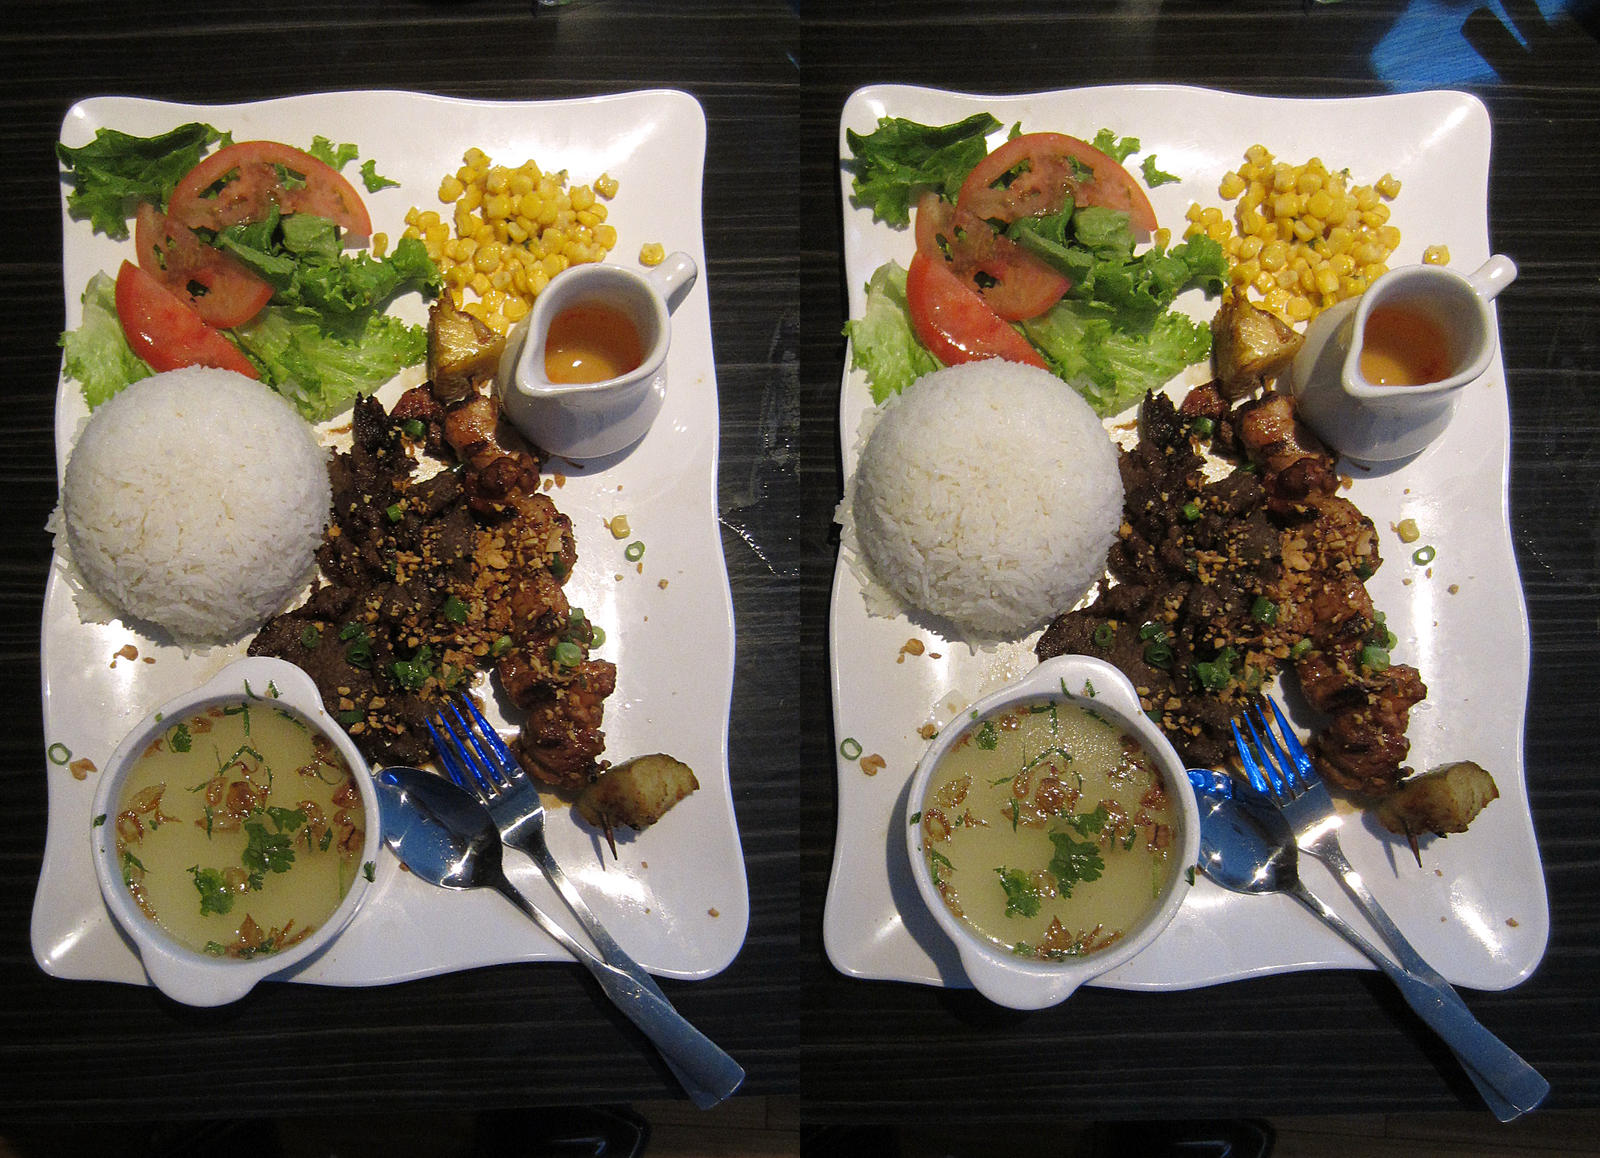 Stereograph - Fancy Entree by alanbecker